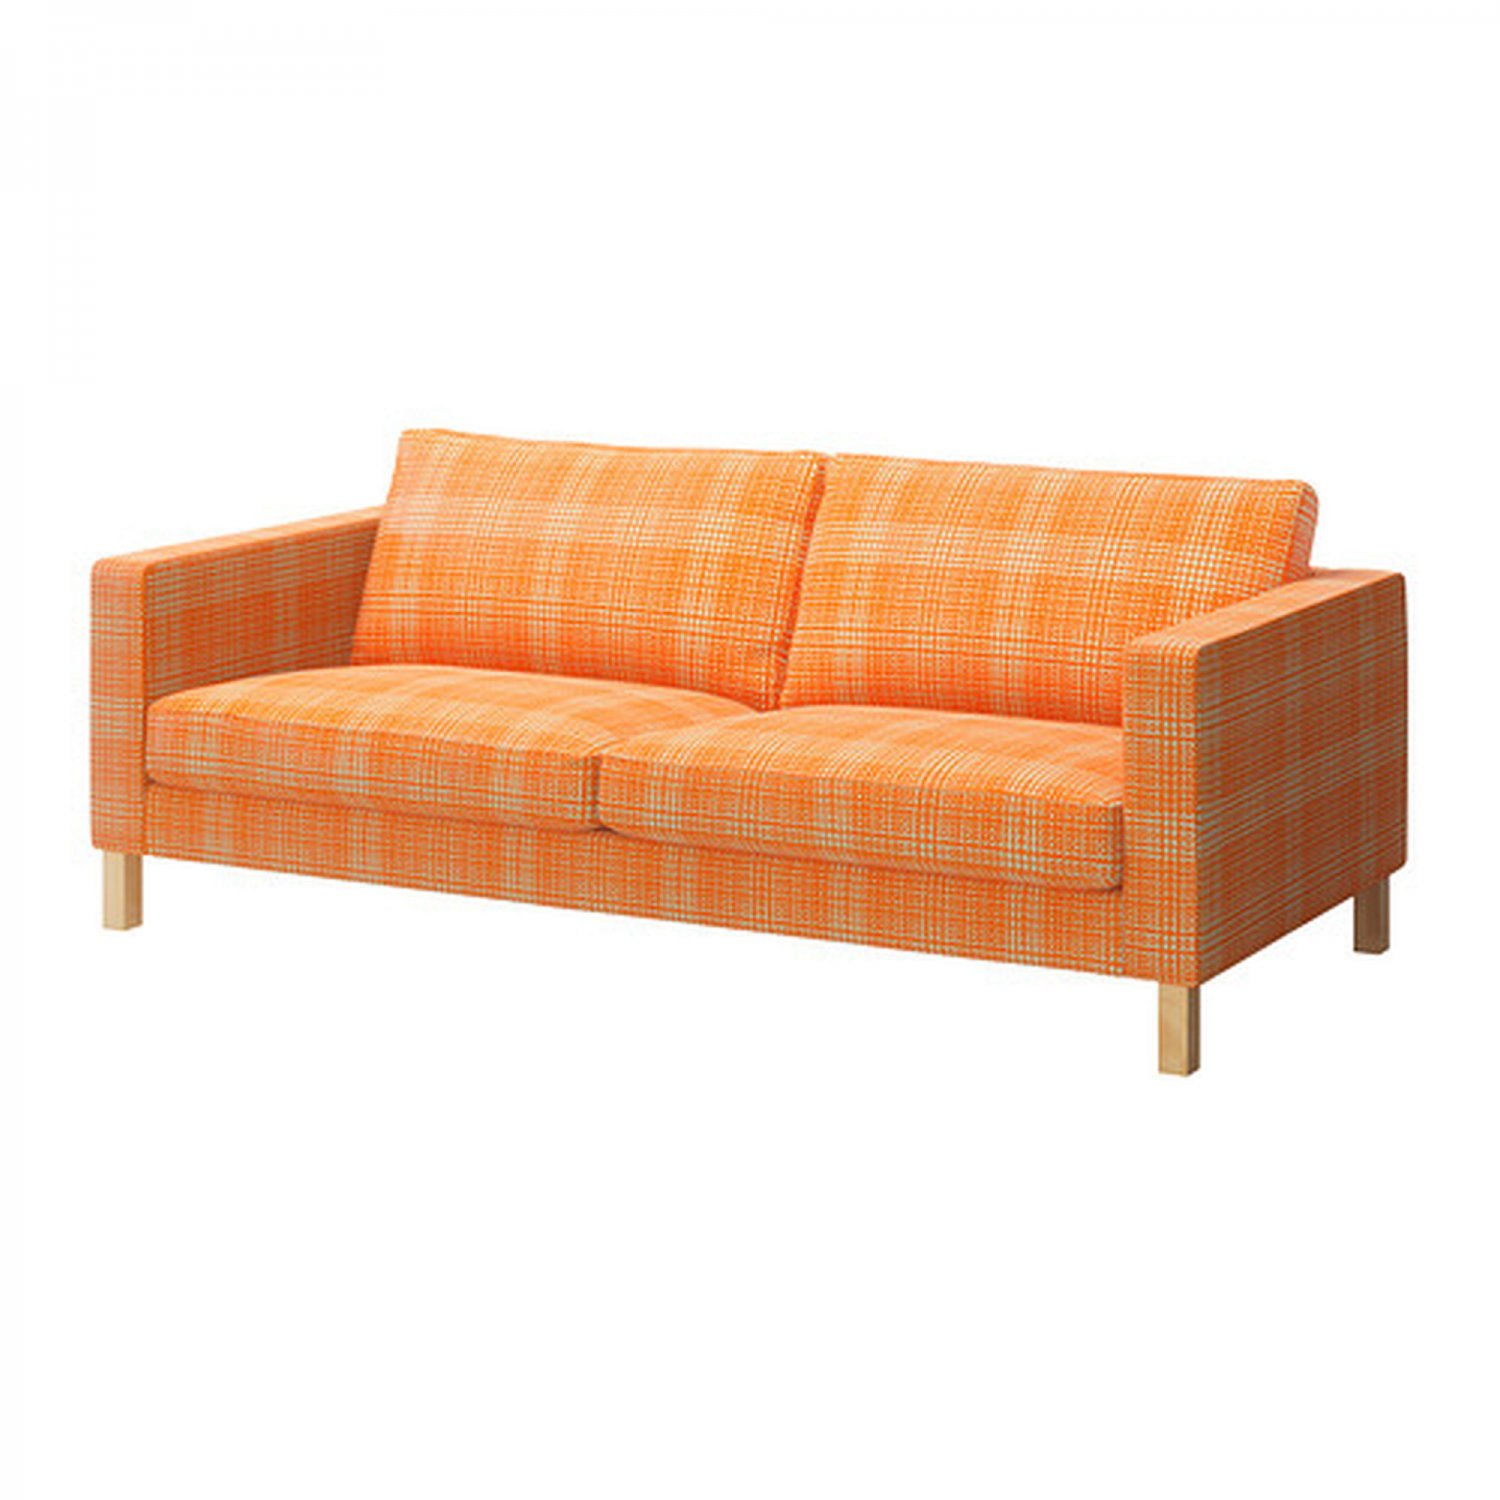 Covers For Ikea Karlstad Sofa: Ikea KARLSTAD 3 Seat Sofa SLIPCOVER Cover HUSIE ORANGE Print